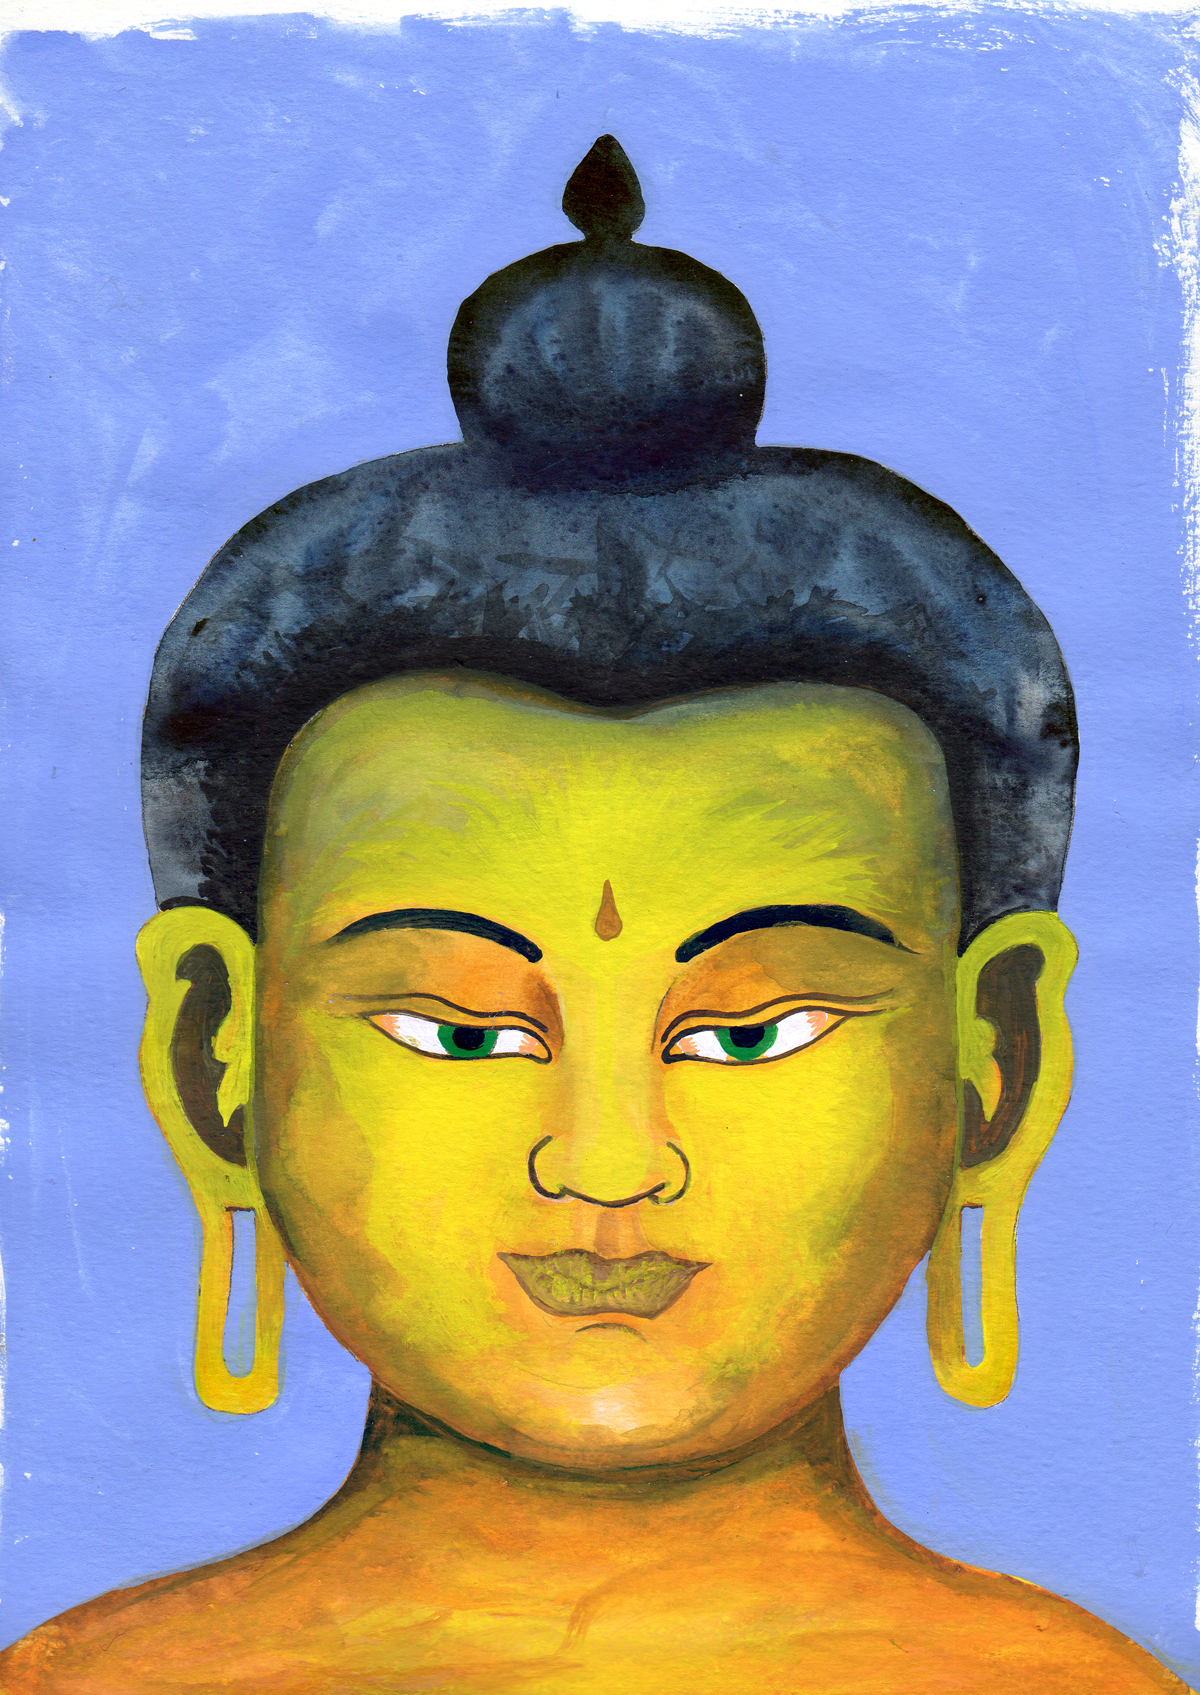 Deity of the Water God